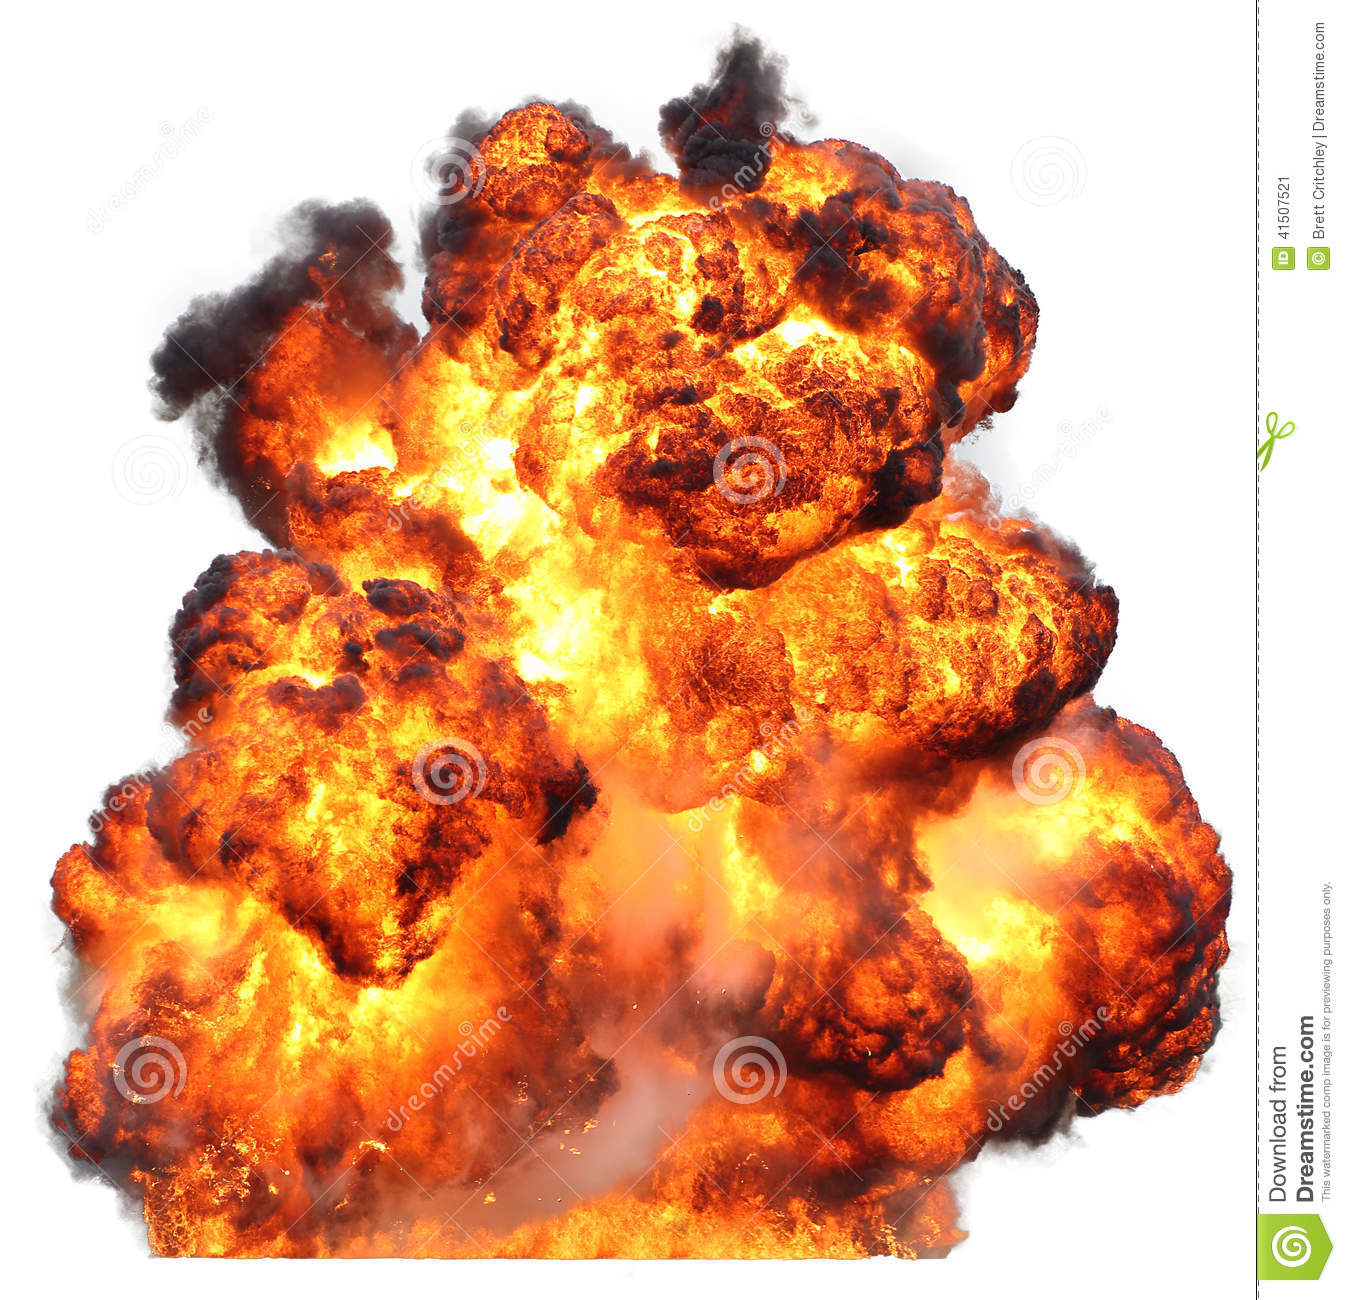 Bomb exploding explosion fireball inferno fire isolated on white ...